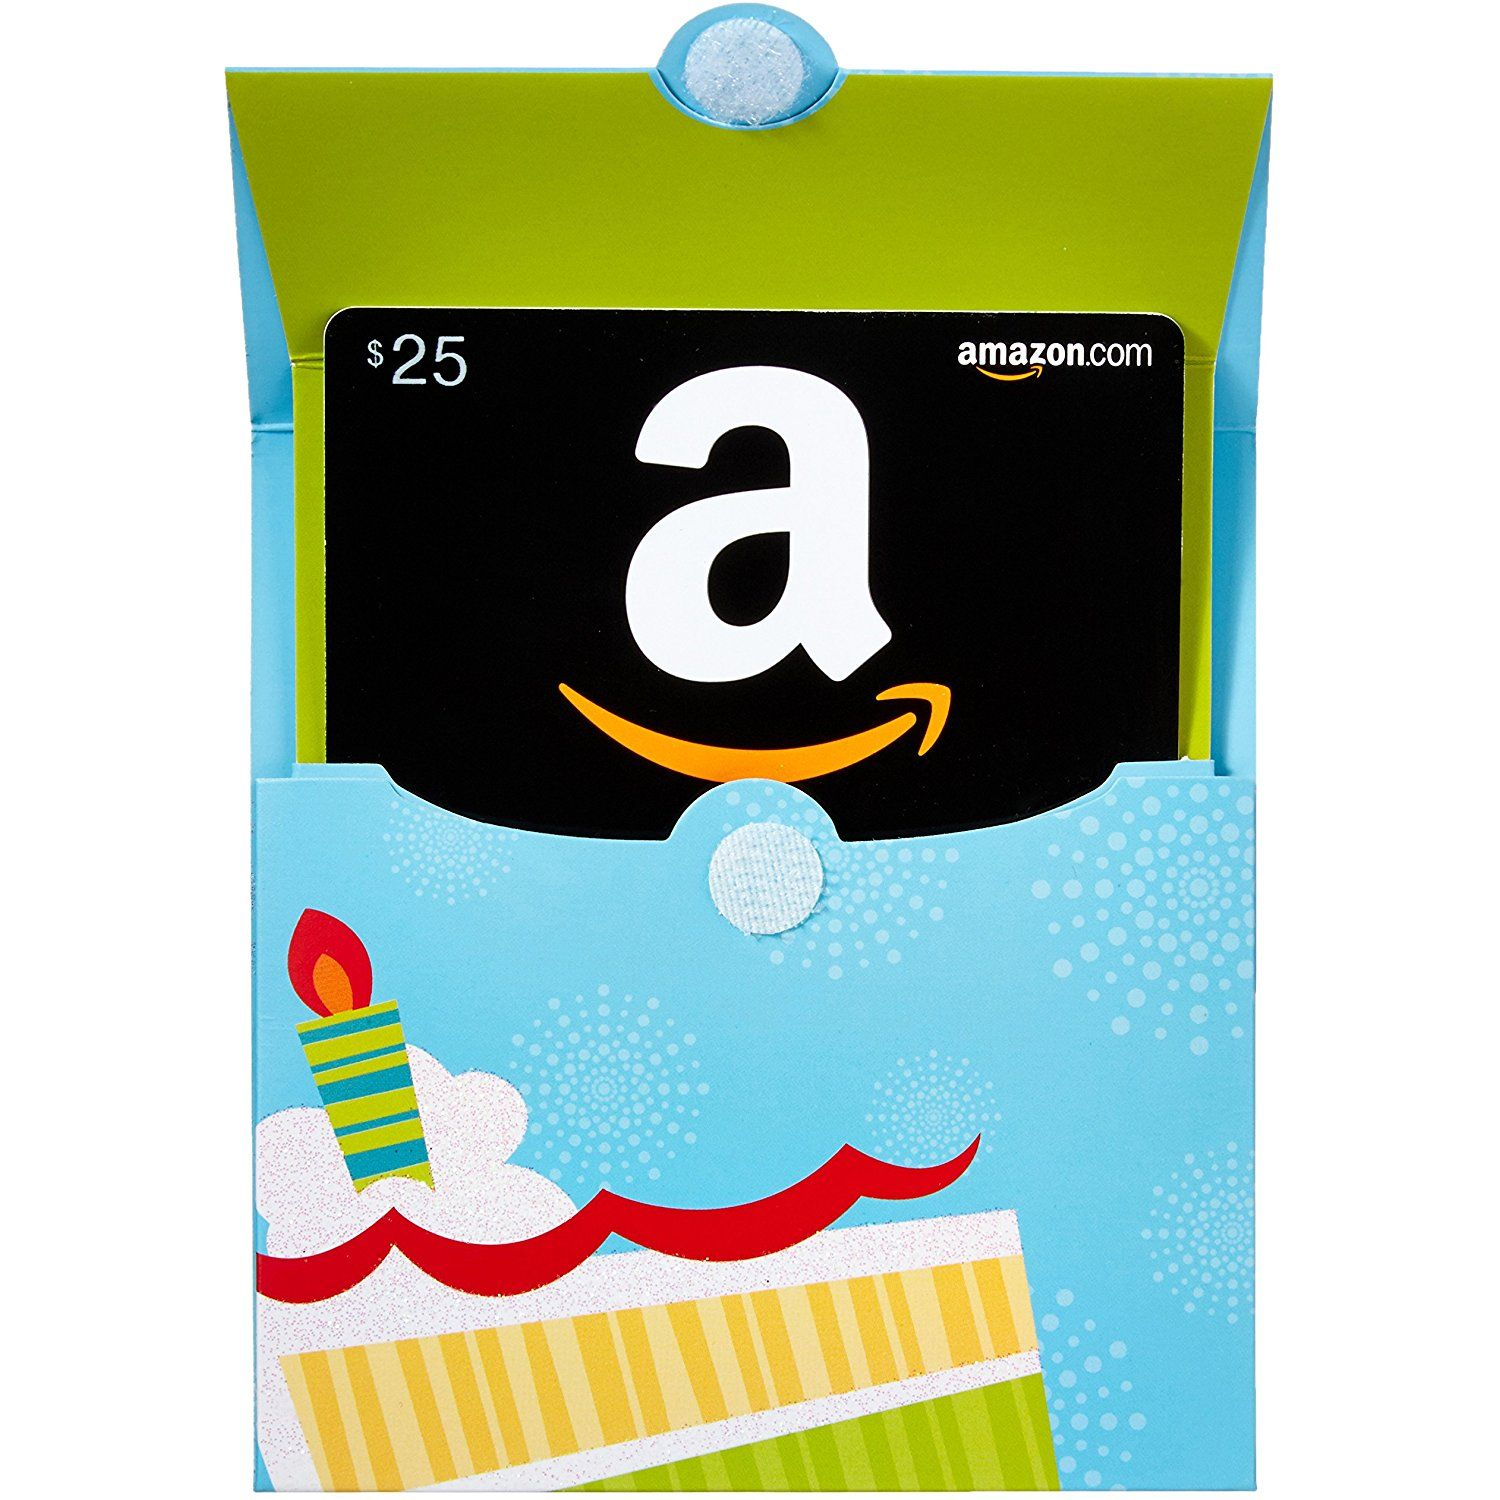 Amazon Gift Cards In A Birthday Reveal Classic Black Card Design See This Great Product Is An Affiliate Link GiftCards